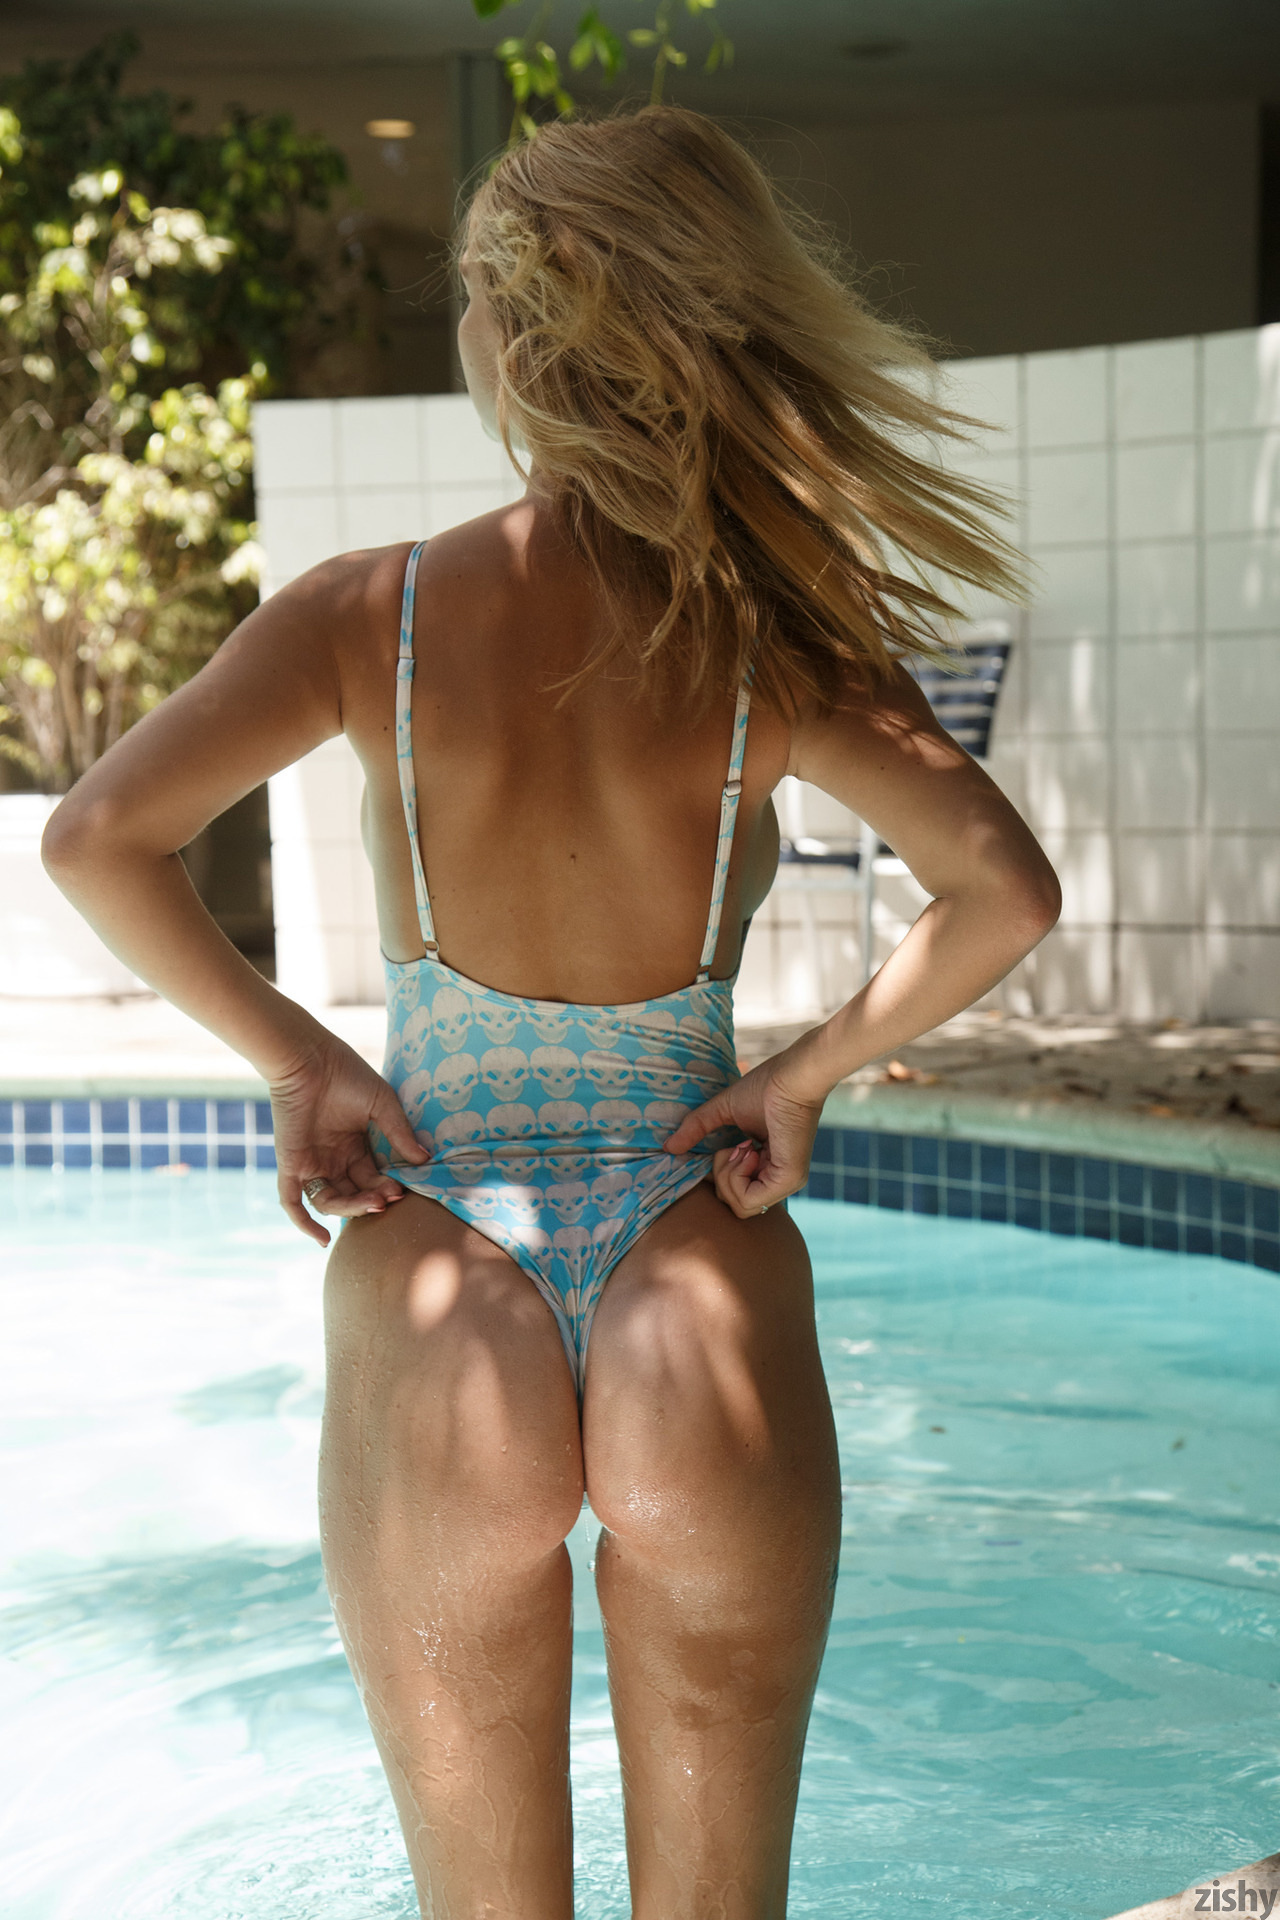 Lily Ivy Poolside Feminism 0075